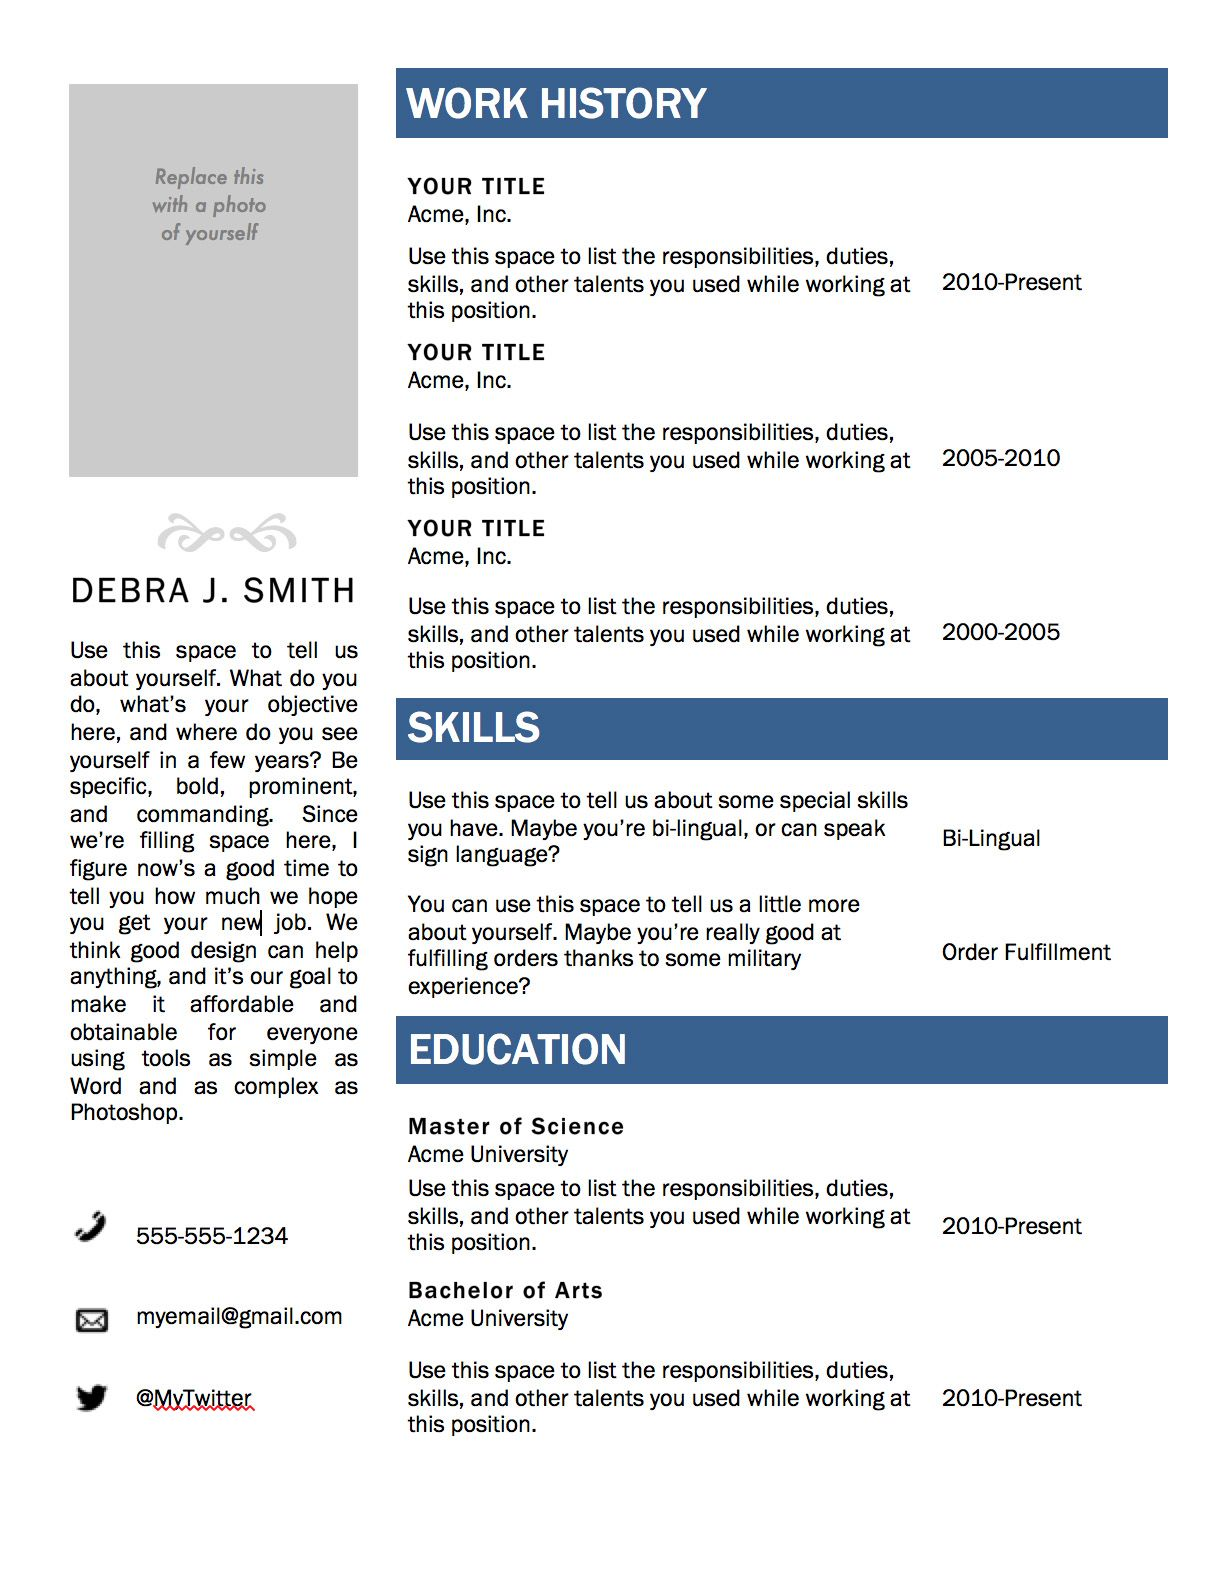 Superior Download Resume Templates Microsoft Word #504    Http://topresume.info/2014/11/16/download Resume Templates Microsoft Word  504/